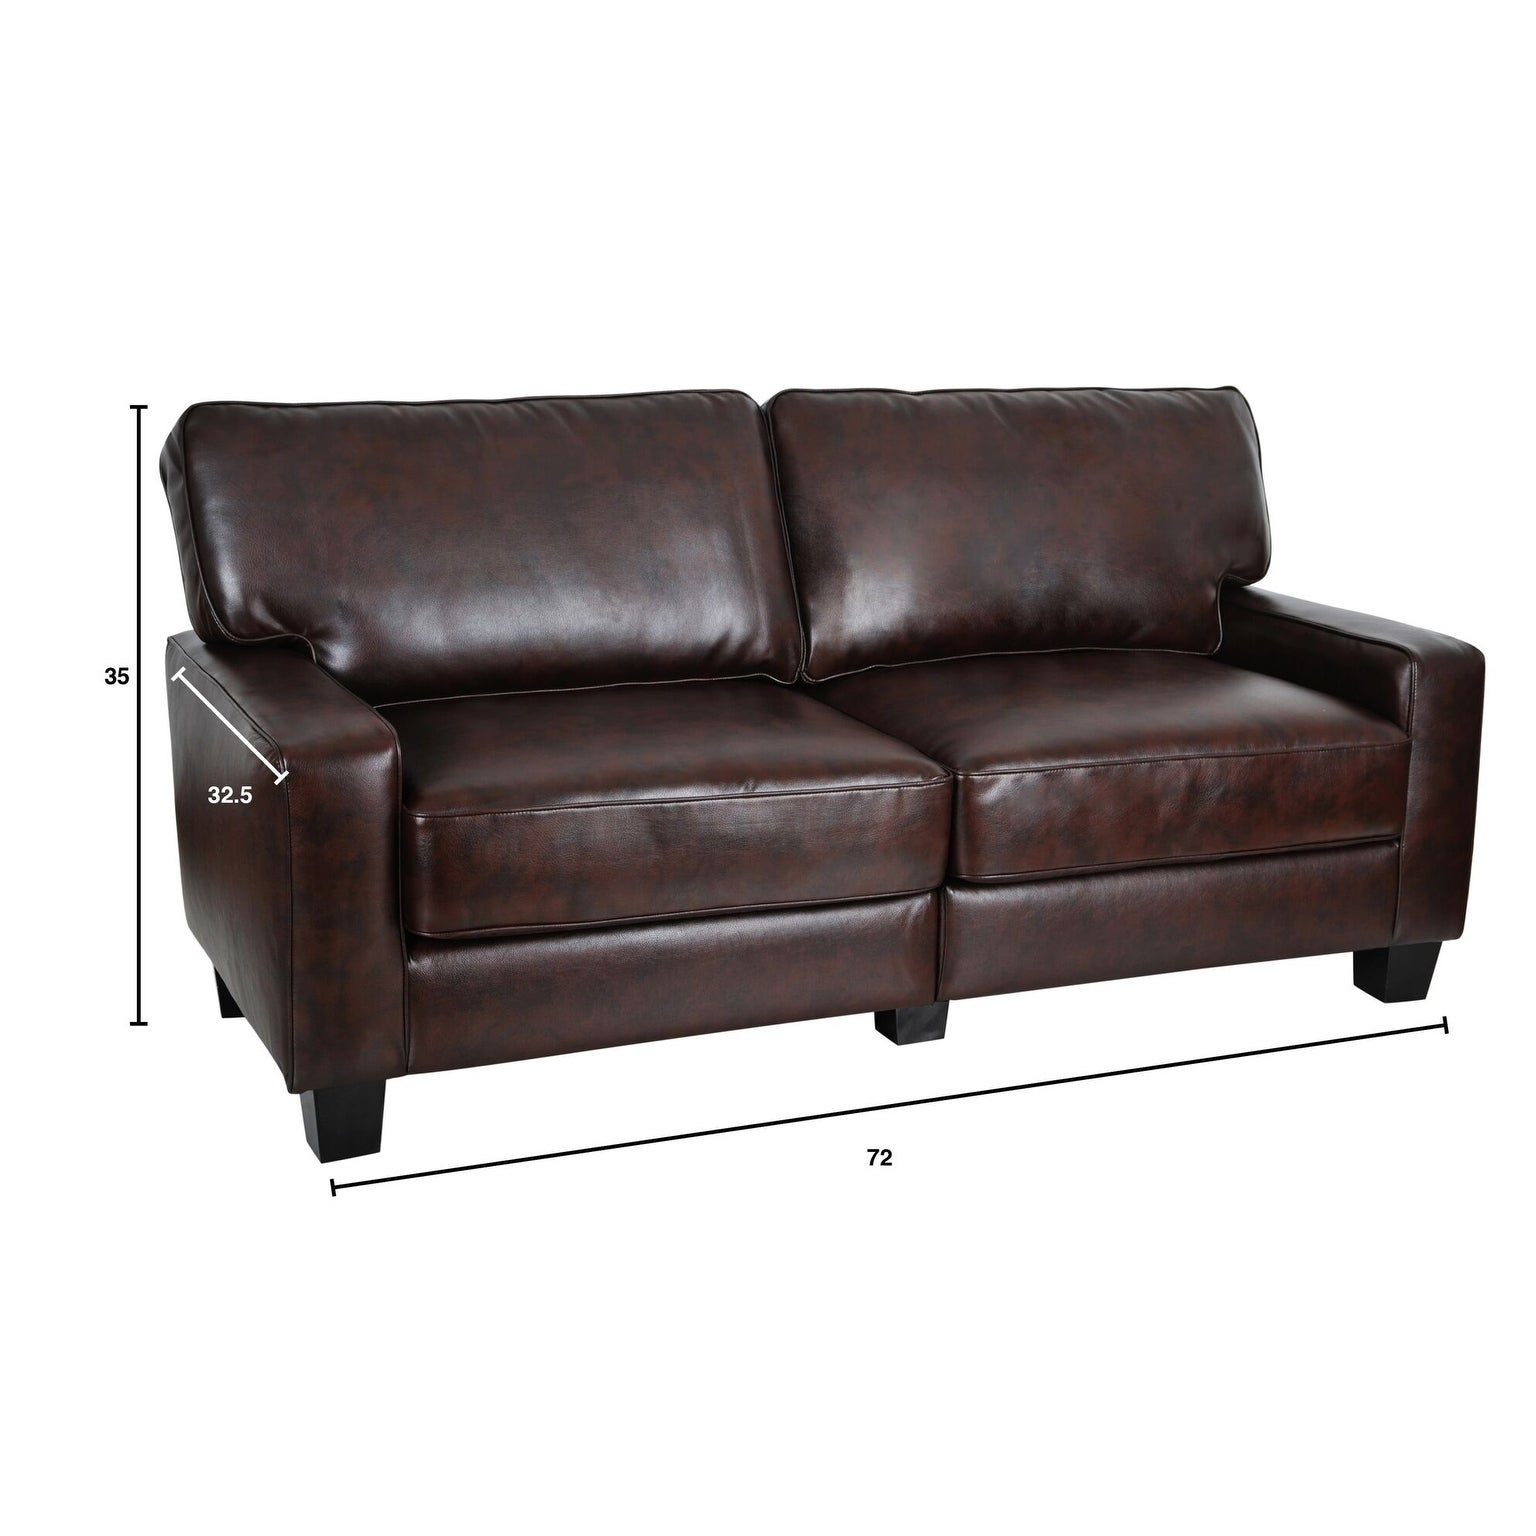 Serta Rta Monaco Collection 72 Inch Brown Leather Sofa Free Shipping Today 9066802